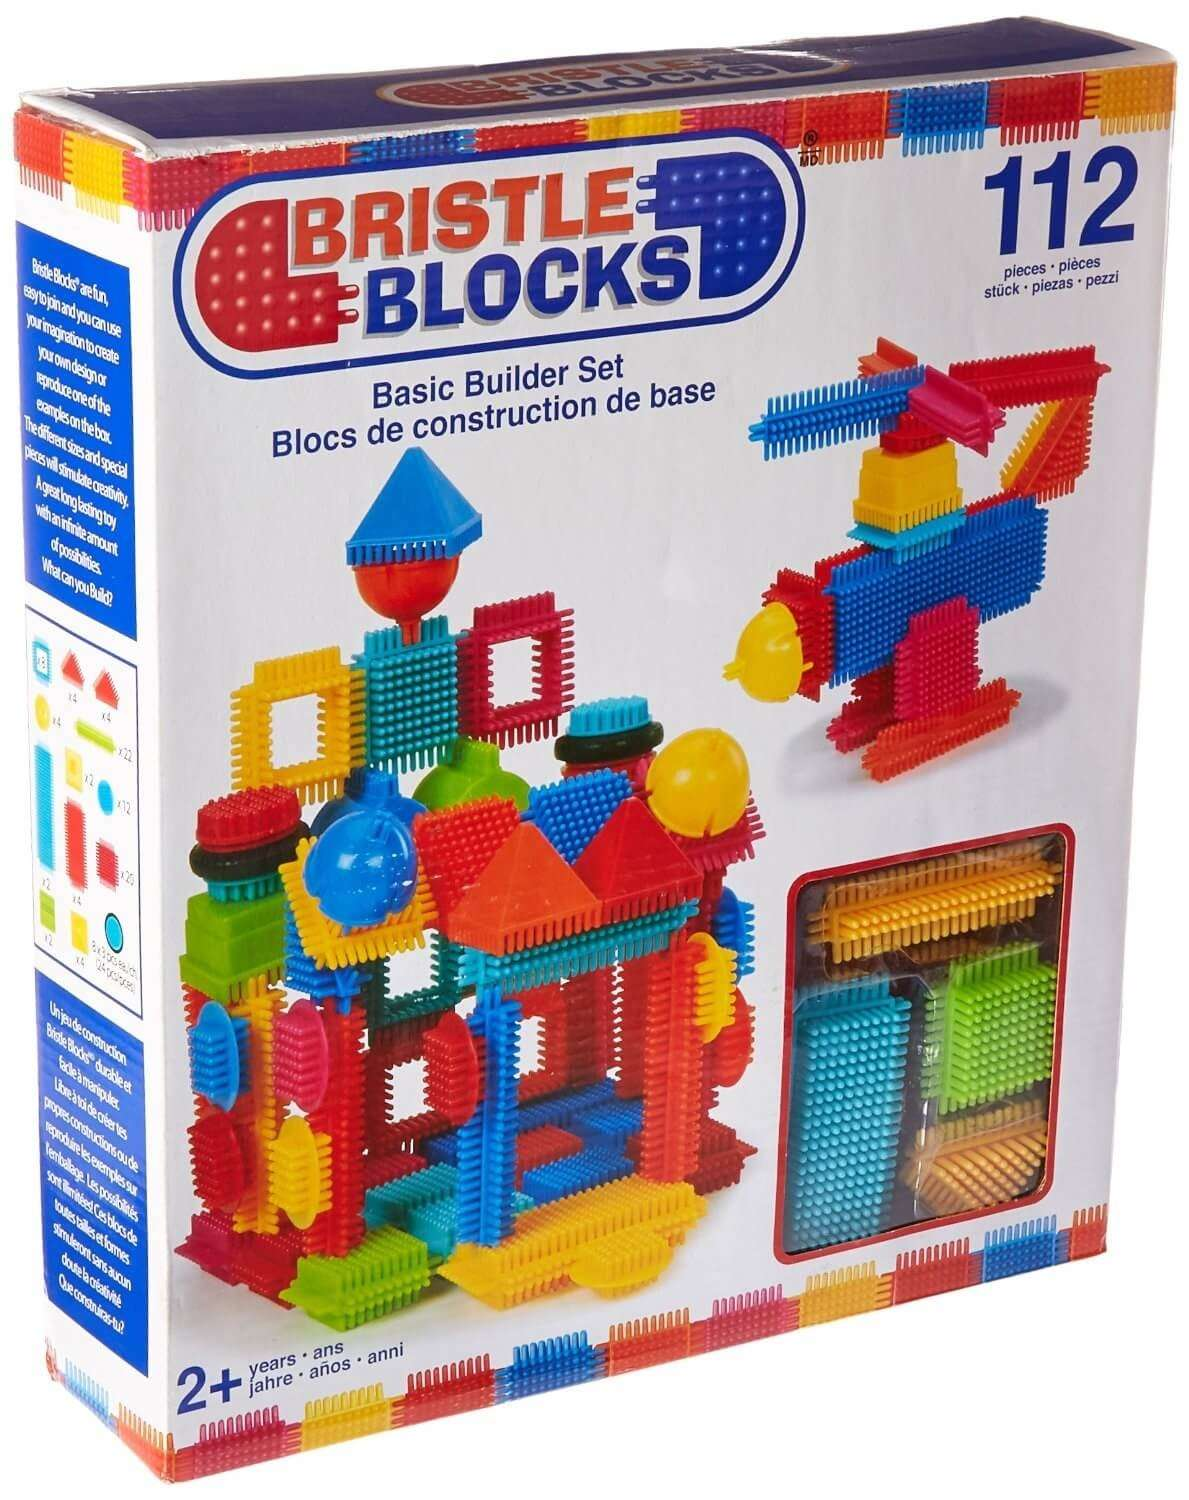 Craft sets for kids - Bristle Building Blocks Have Become A Classic Builder Set Because Kids Can Stack Them Like Regular Blocks And The Bristles Allow Kids To Connect The Blocks